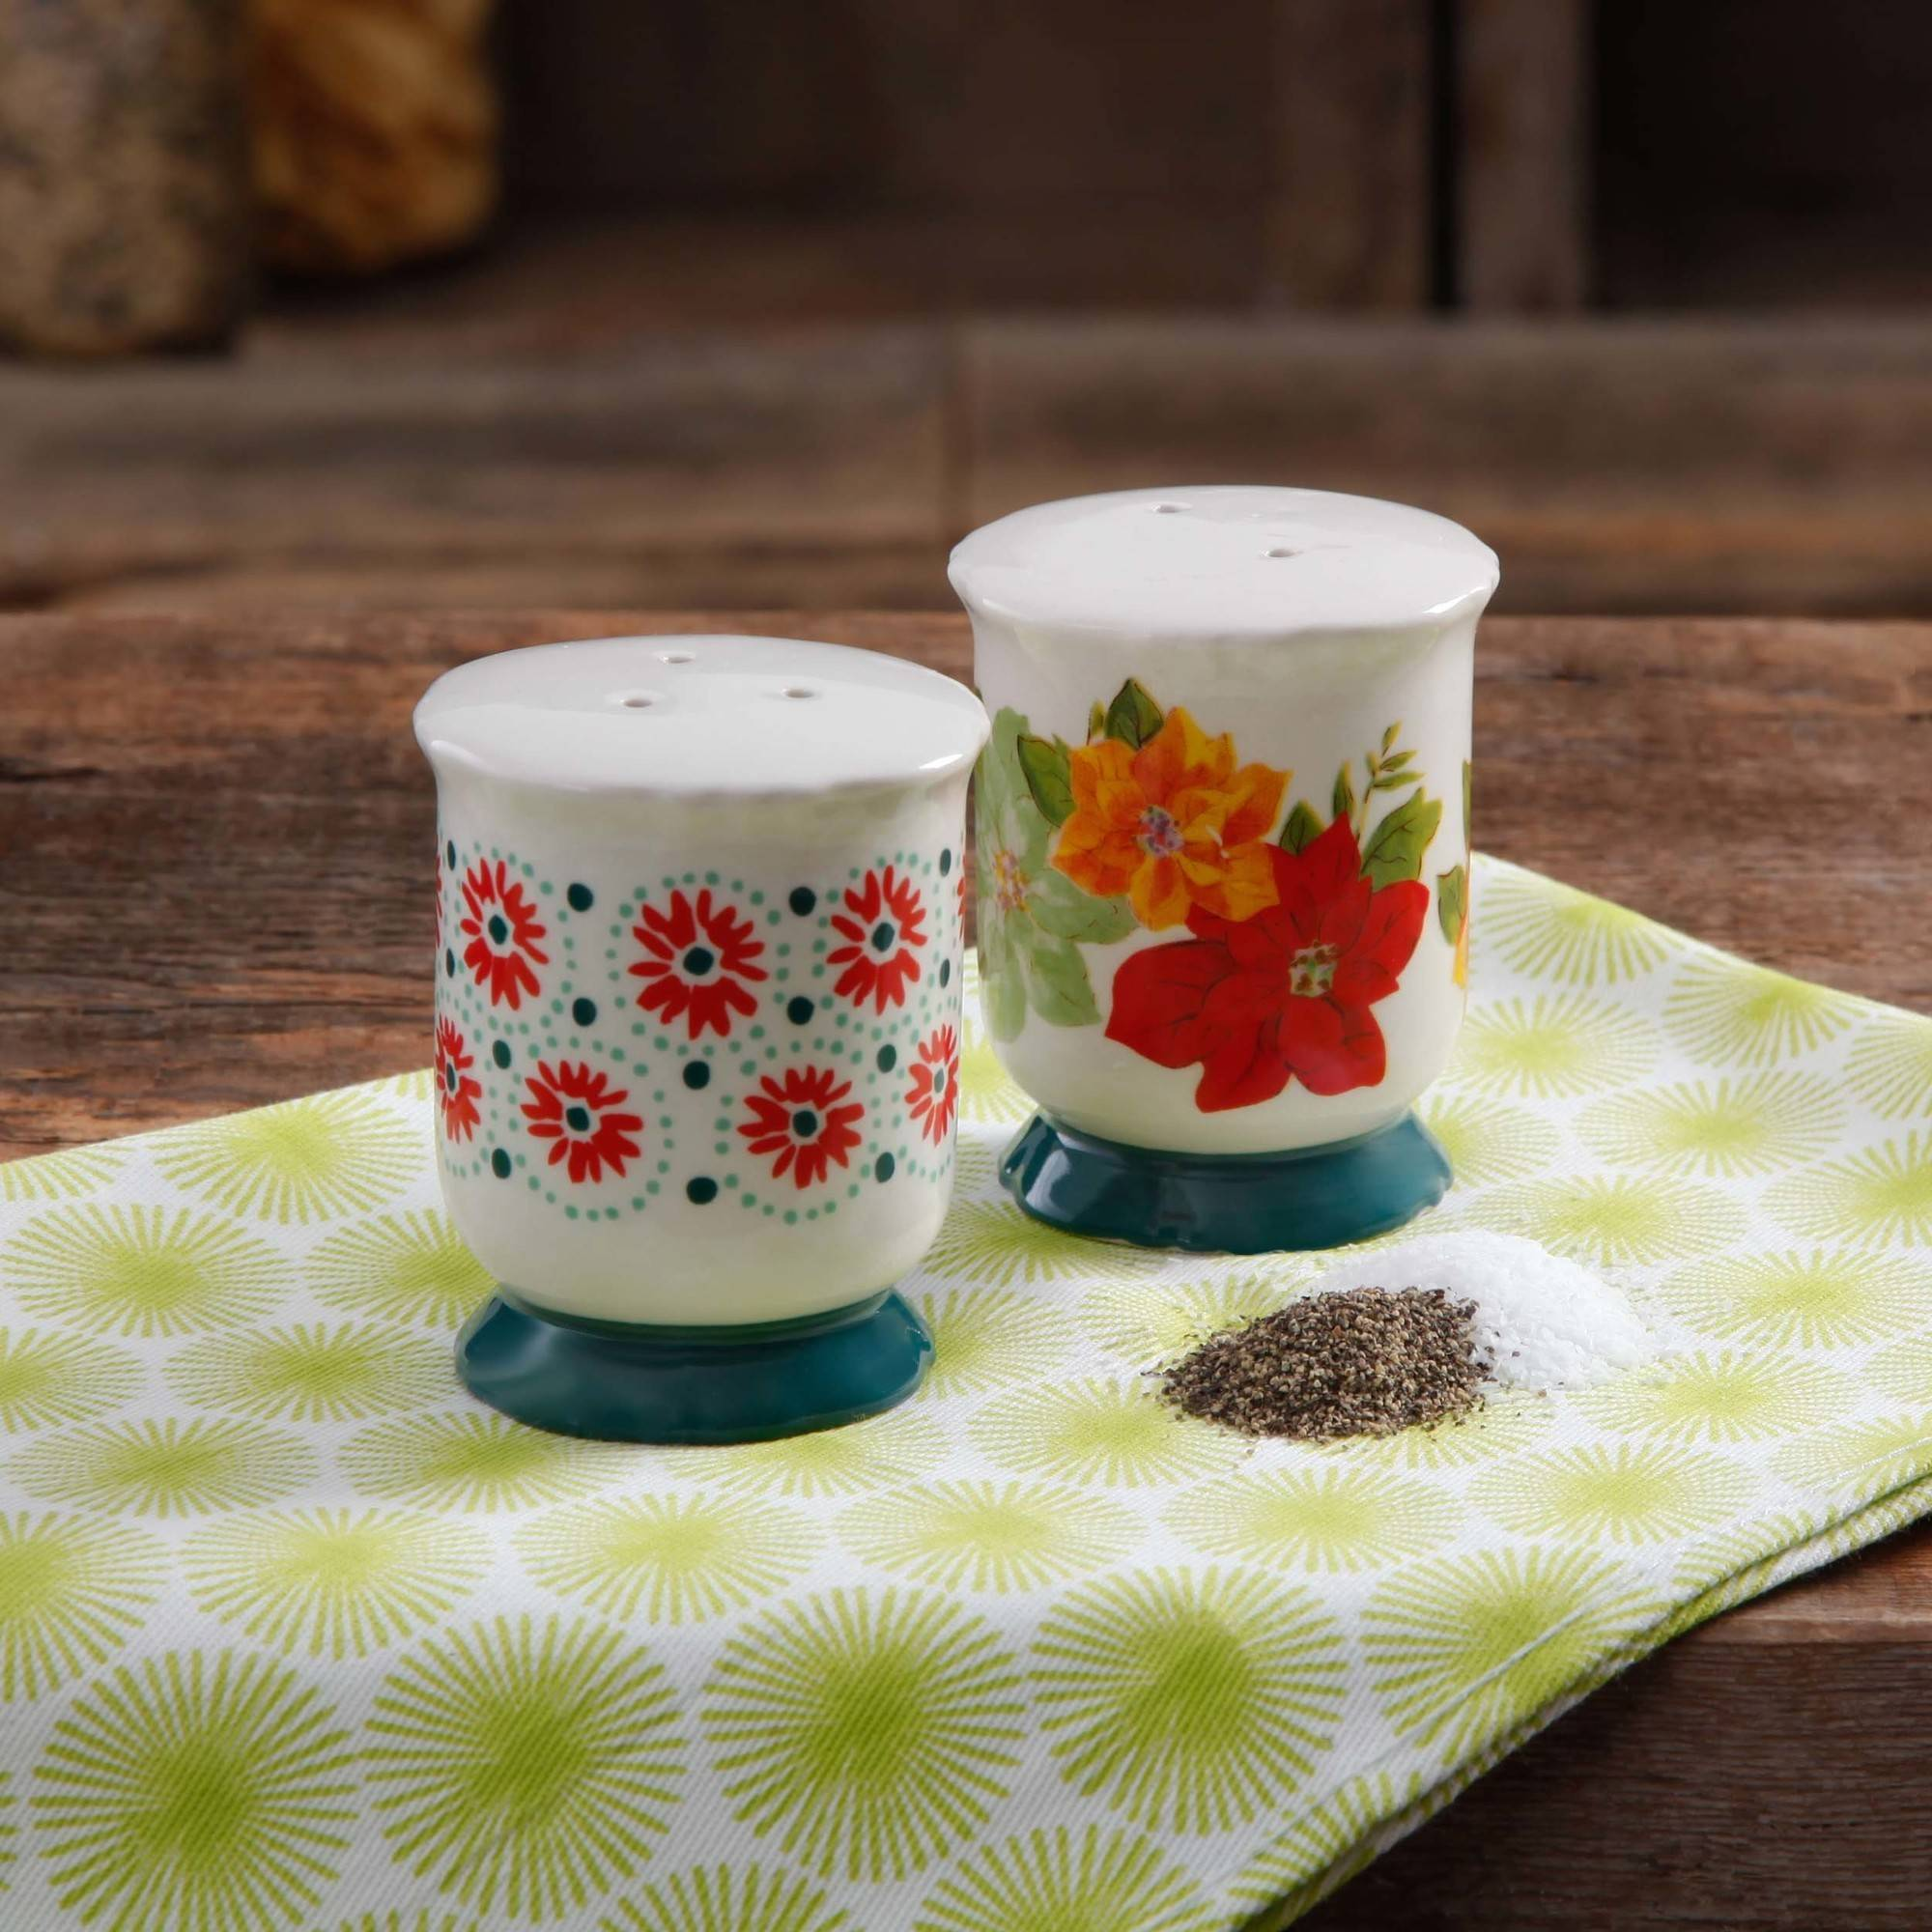 The Pioneer Woman Poinsettia Footed Salt and Pepper Shaker Set